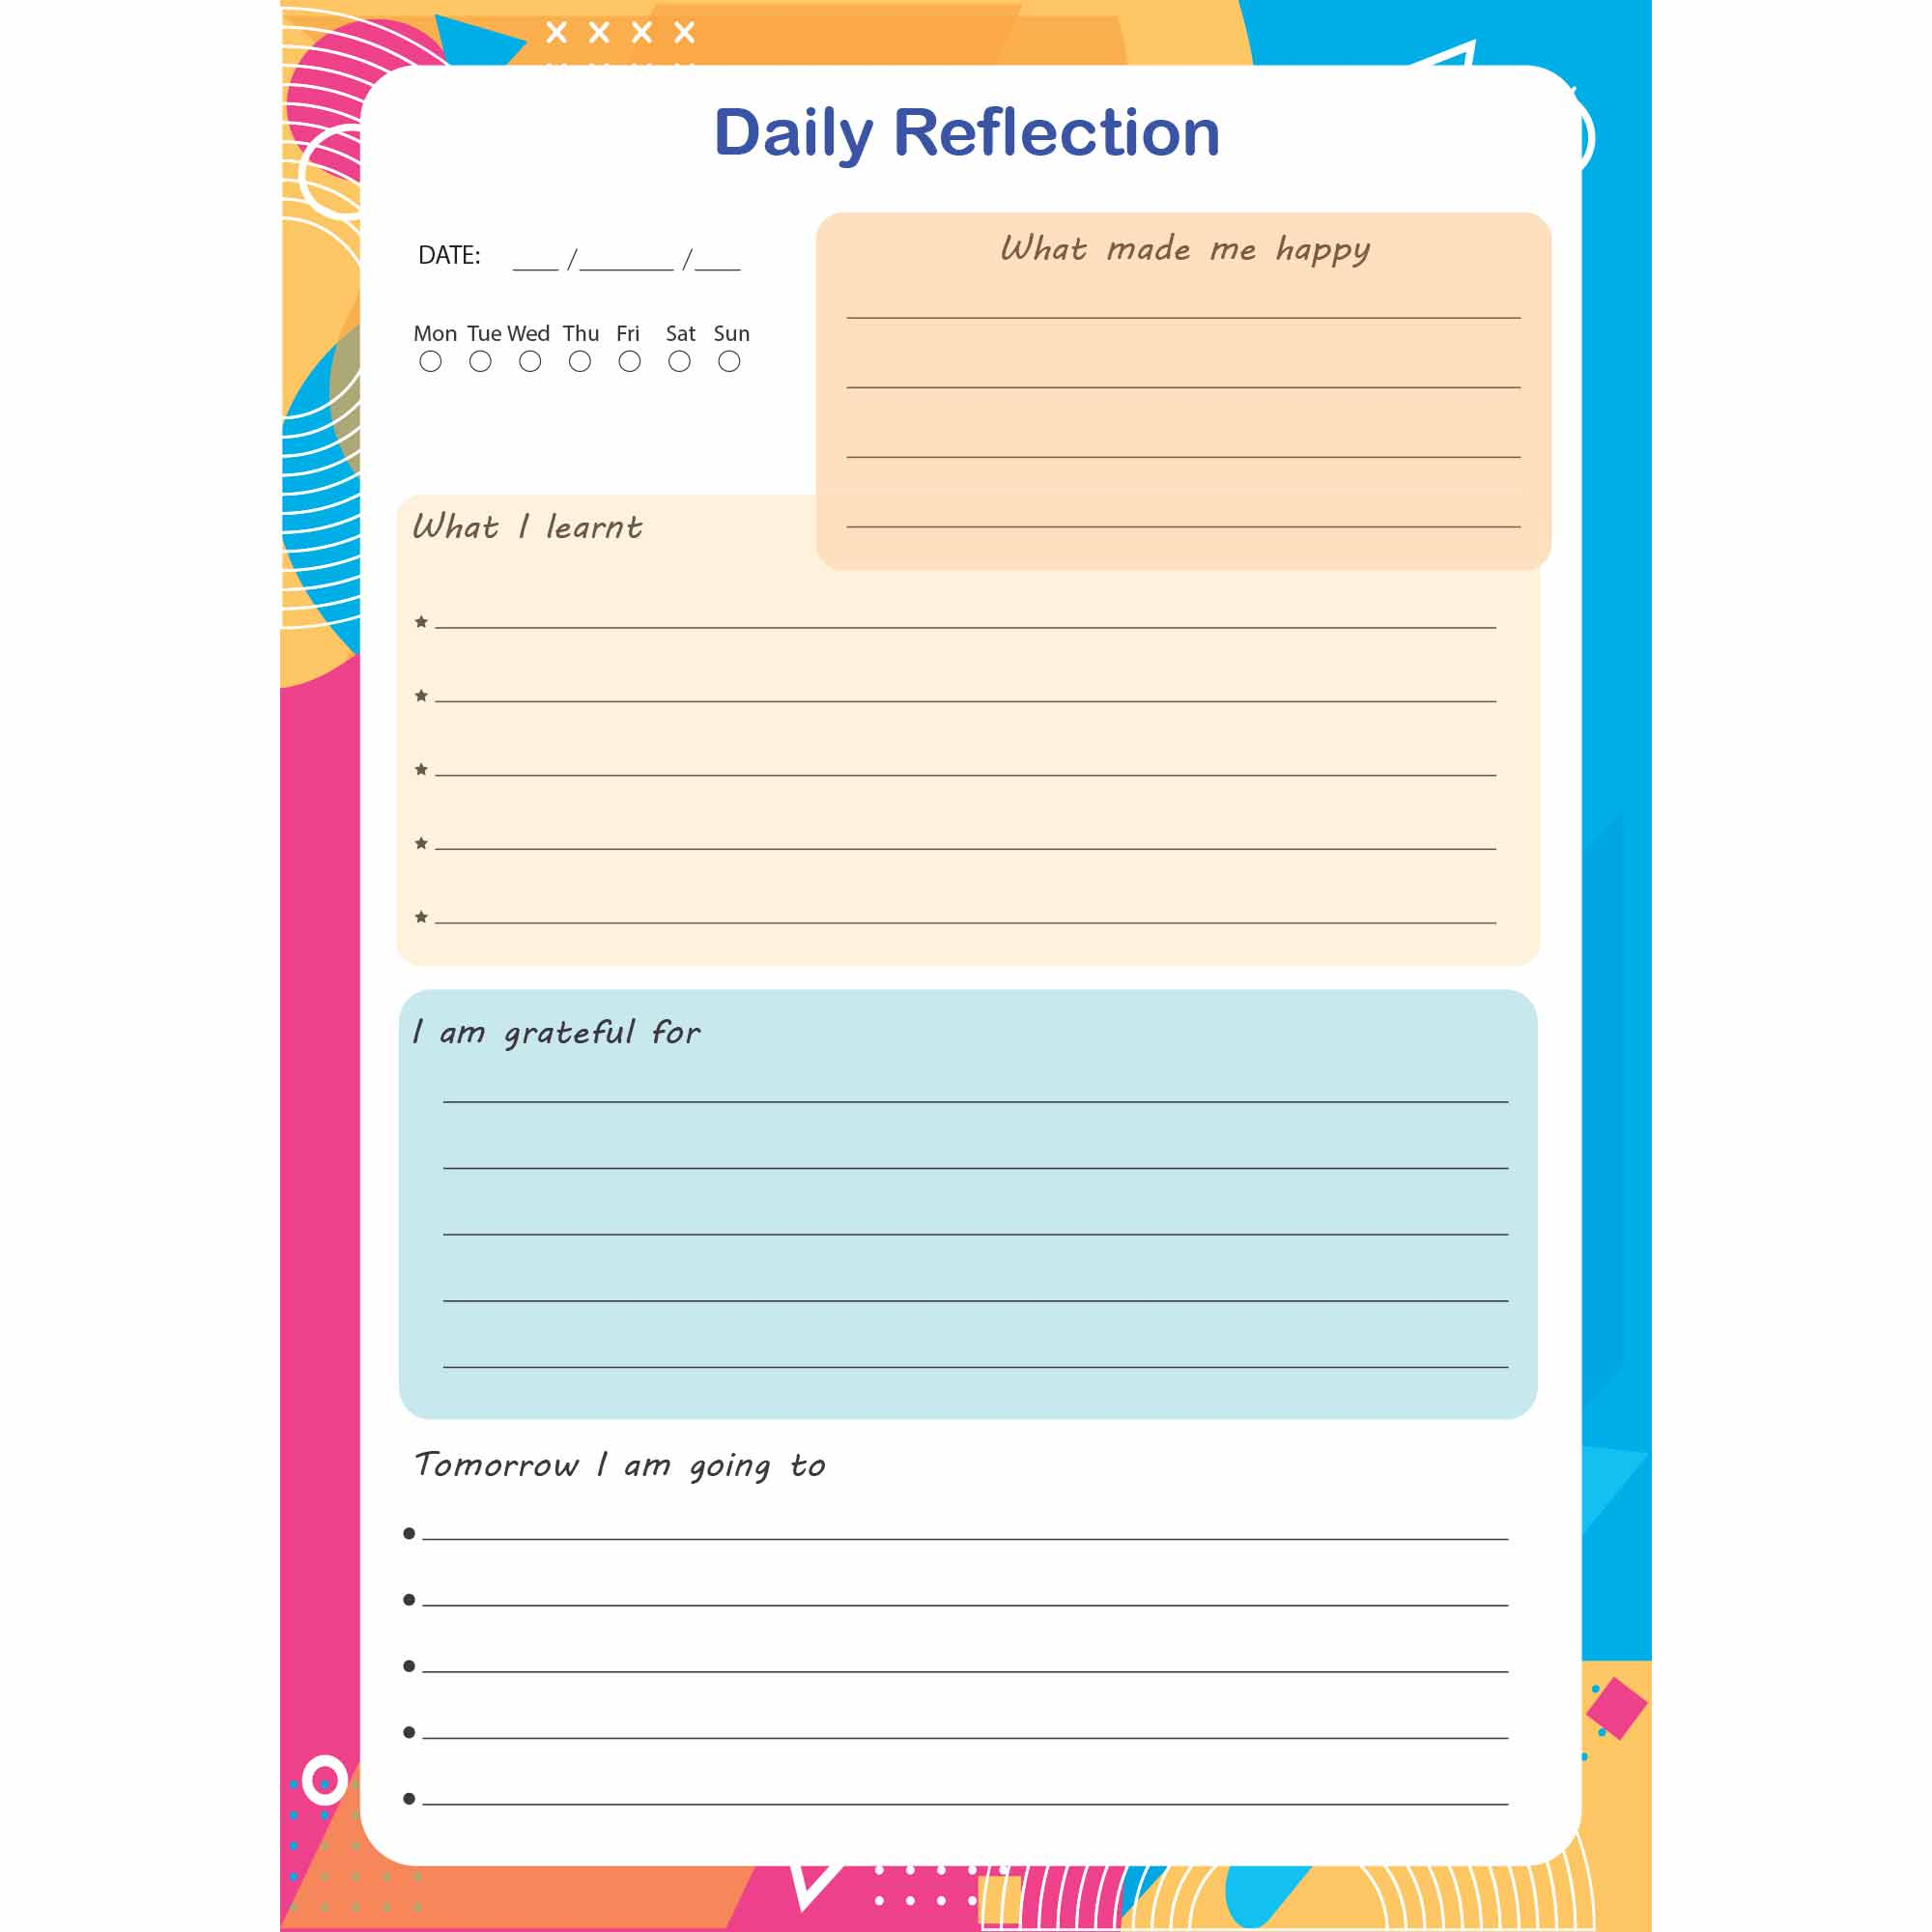 Daily Reflection Gratitude Journal Free Printable Pdf Grit Mindset